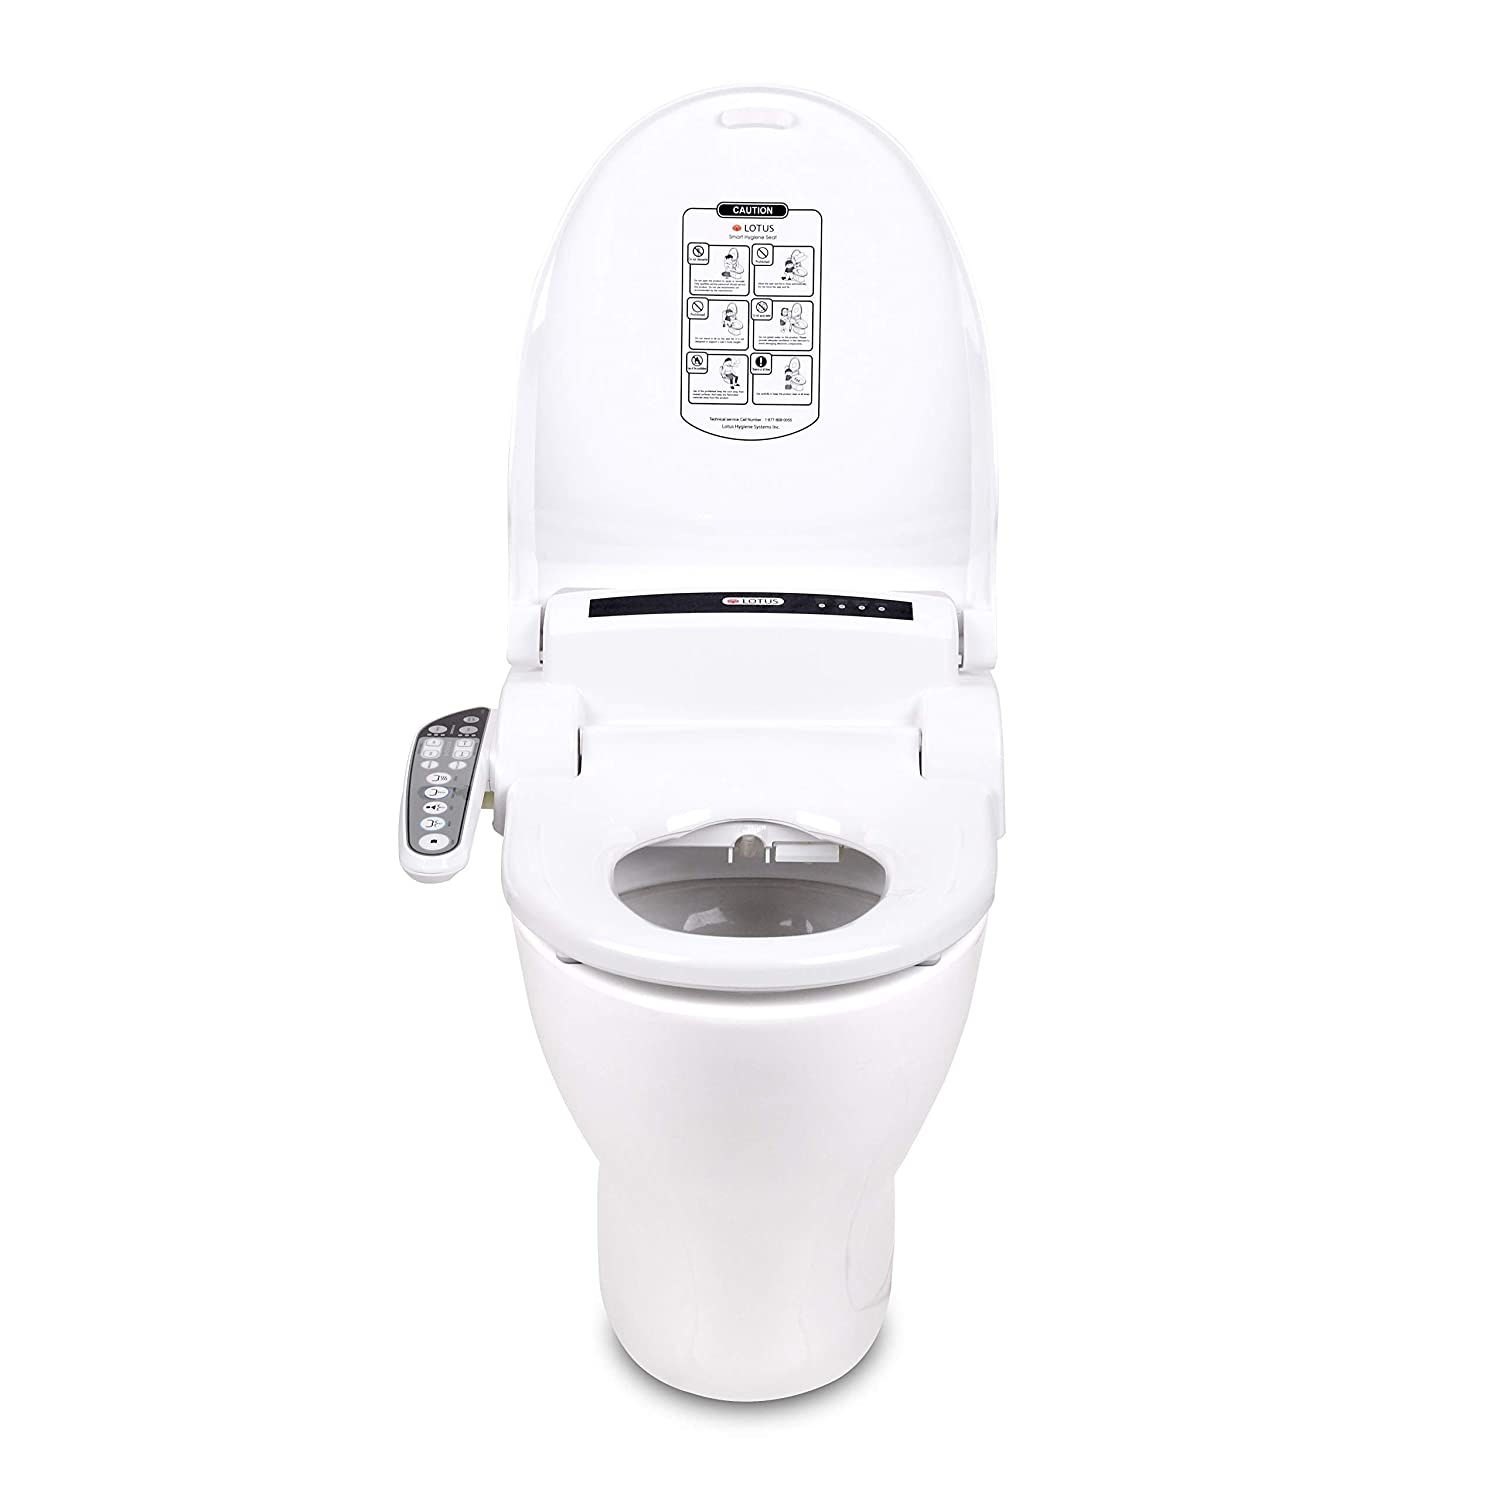 Stupendous Lotus Ats 909 Advanced Smart Toilet Seat Bidet Purestream Function Constipation Relief Heated Seat And Temperature Controlled Wash Warm Air Dryer Cjindustries Chair Design For Home Cjindustriesco